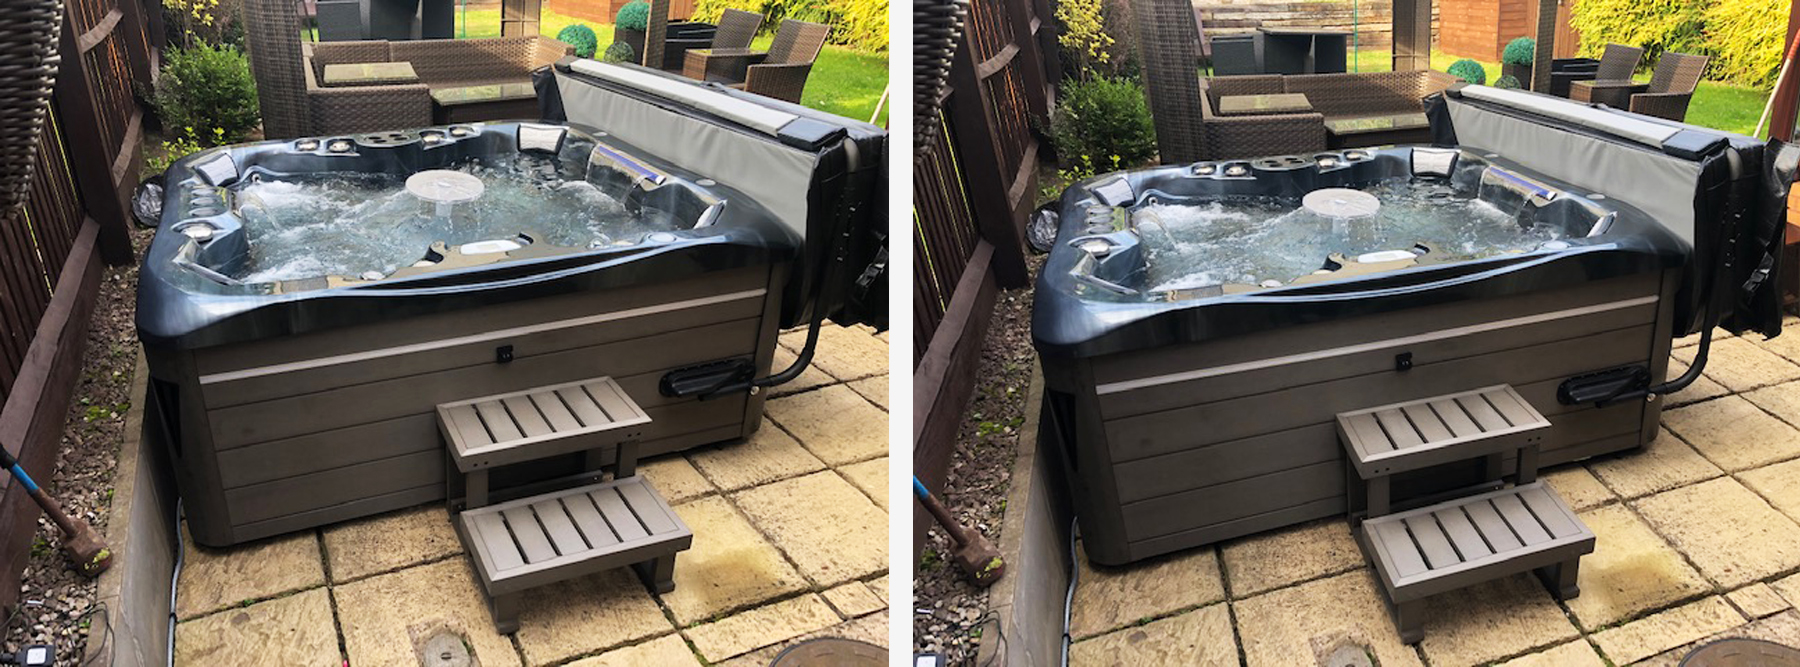 british hot tubs kensington installation